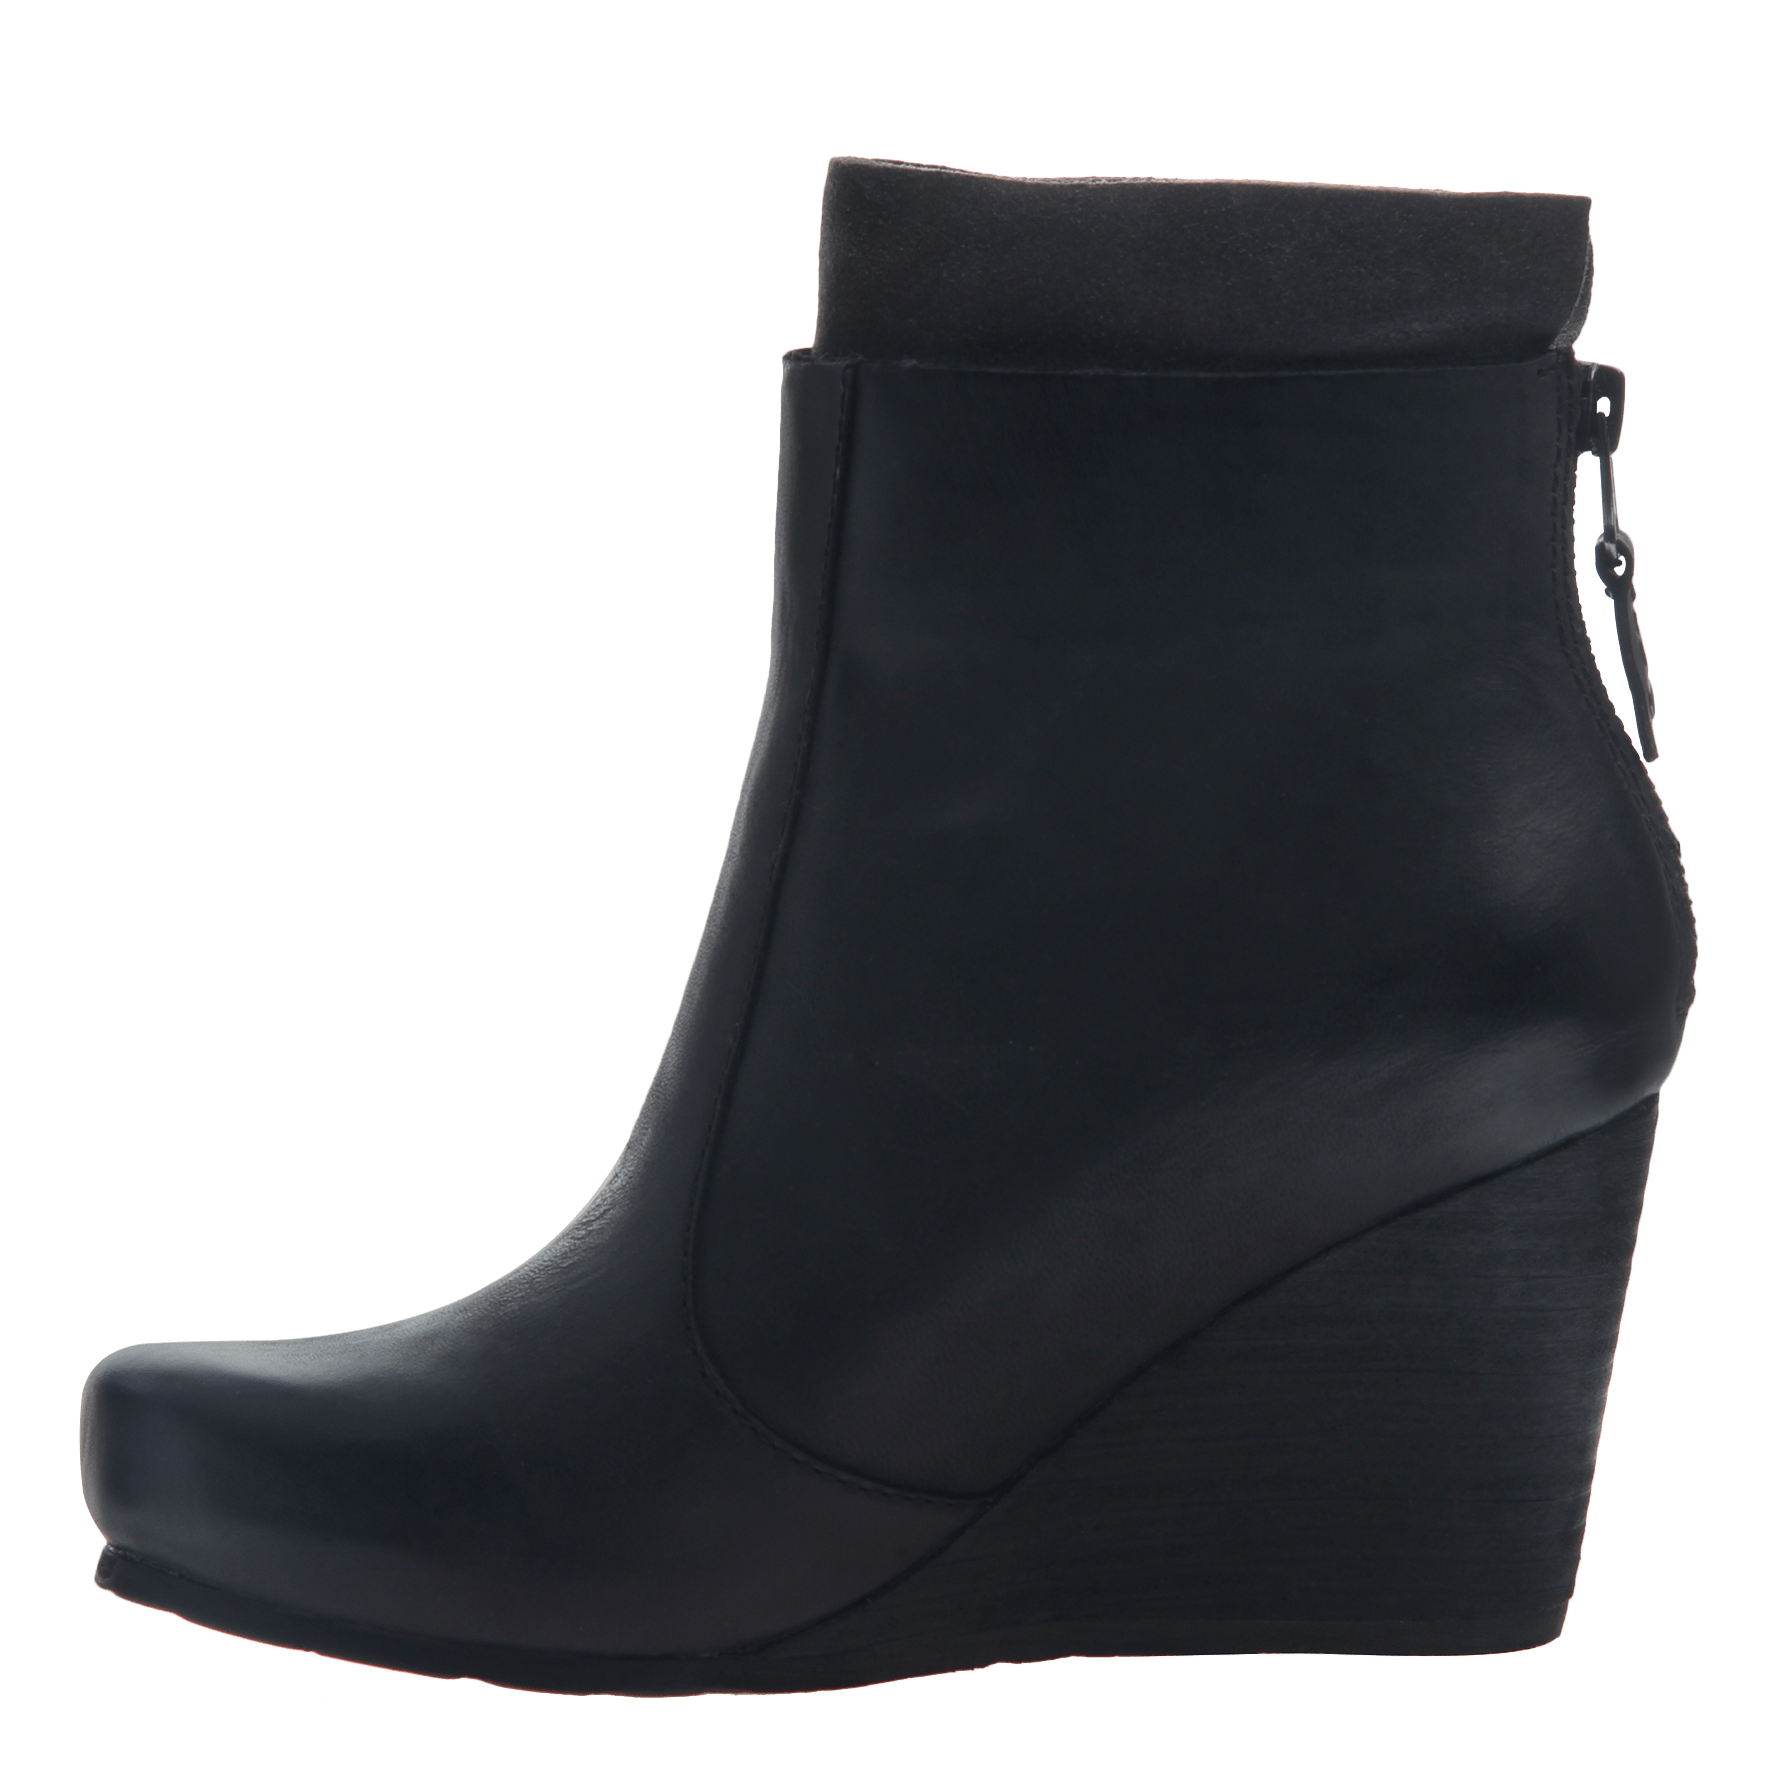 7234291301d Women s wedge ankle bootie the vagary in black inside view